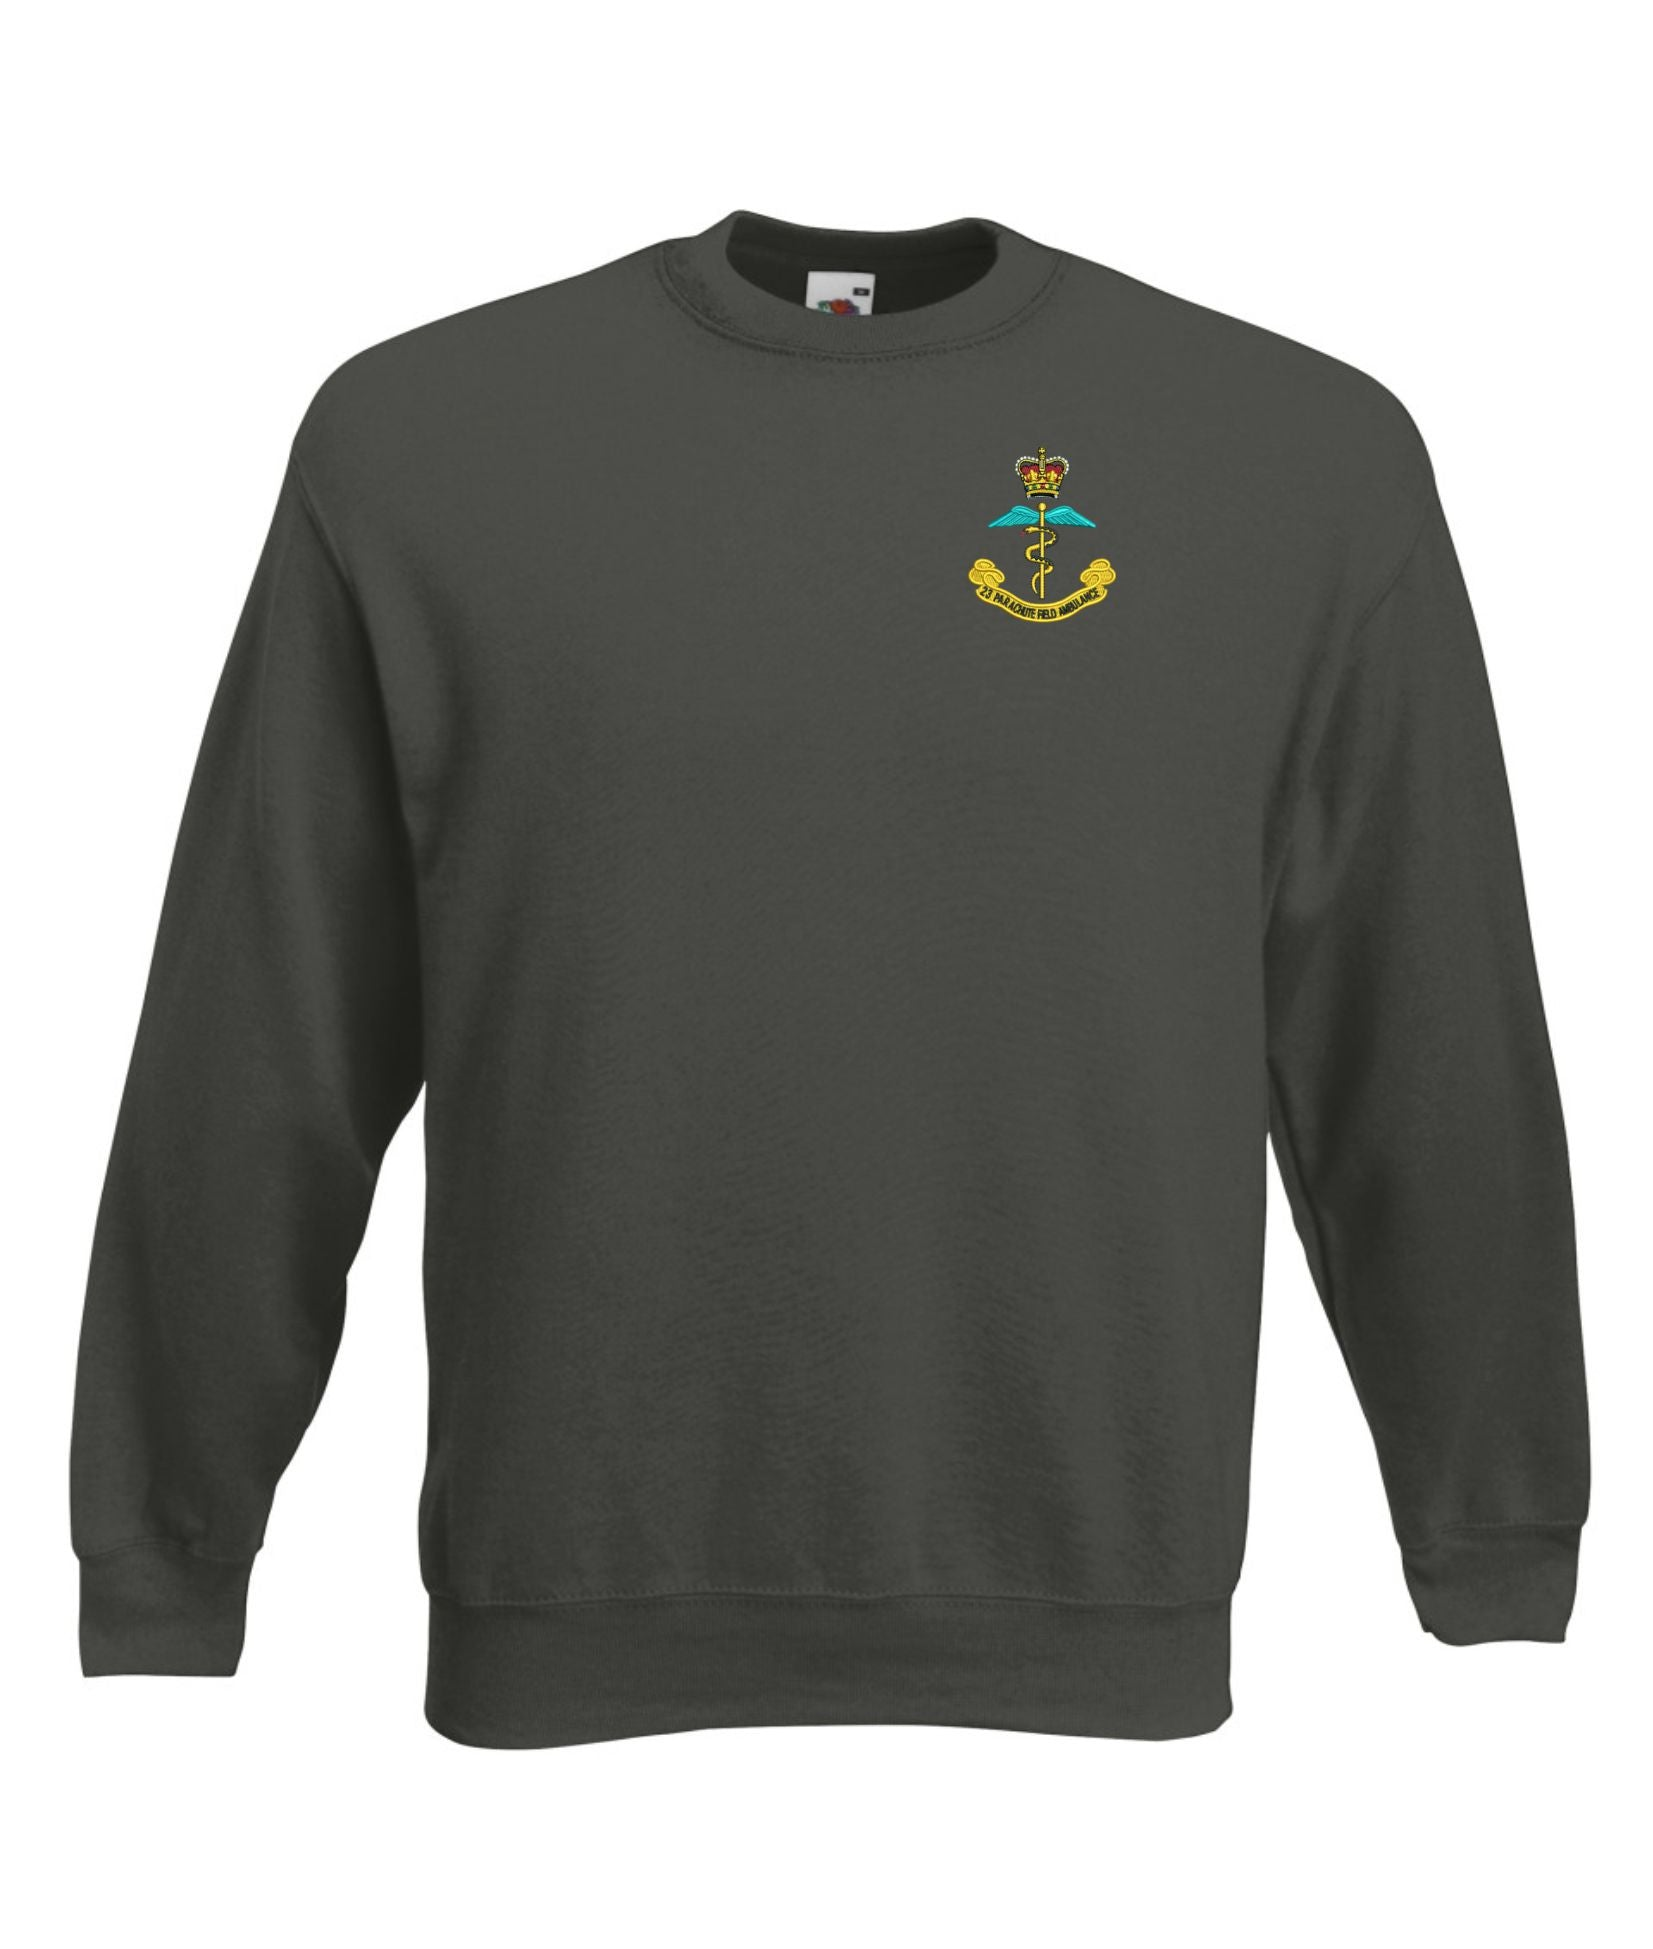 23rd Parachute Field Ambulance sweatshirts